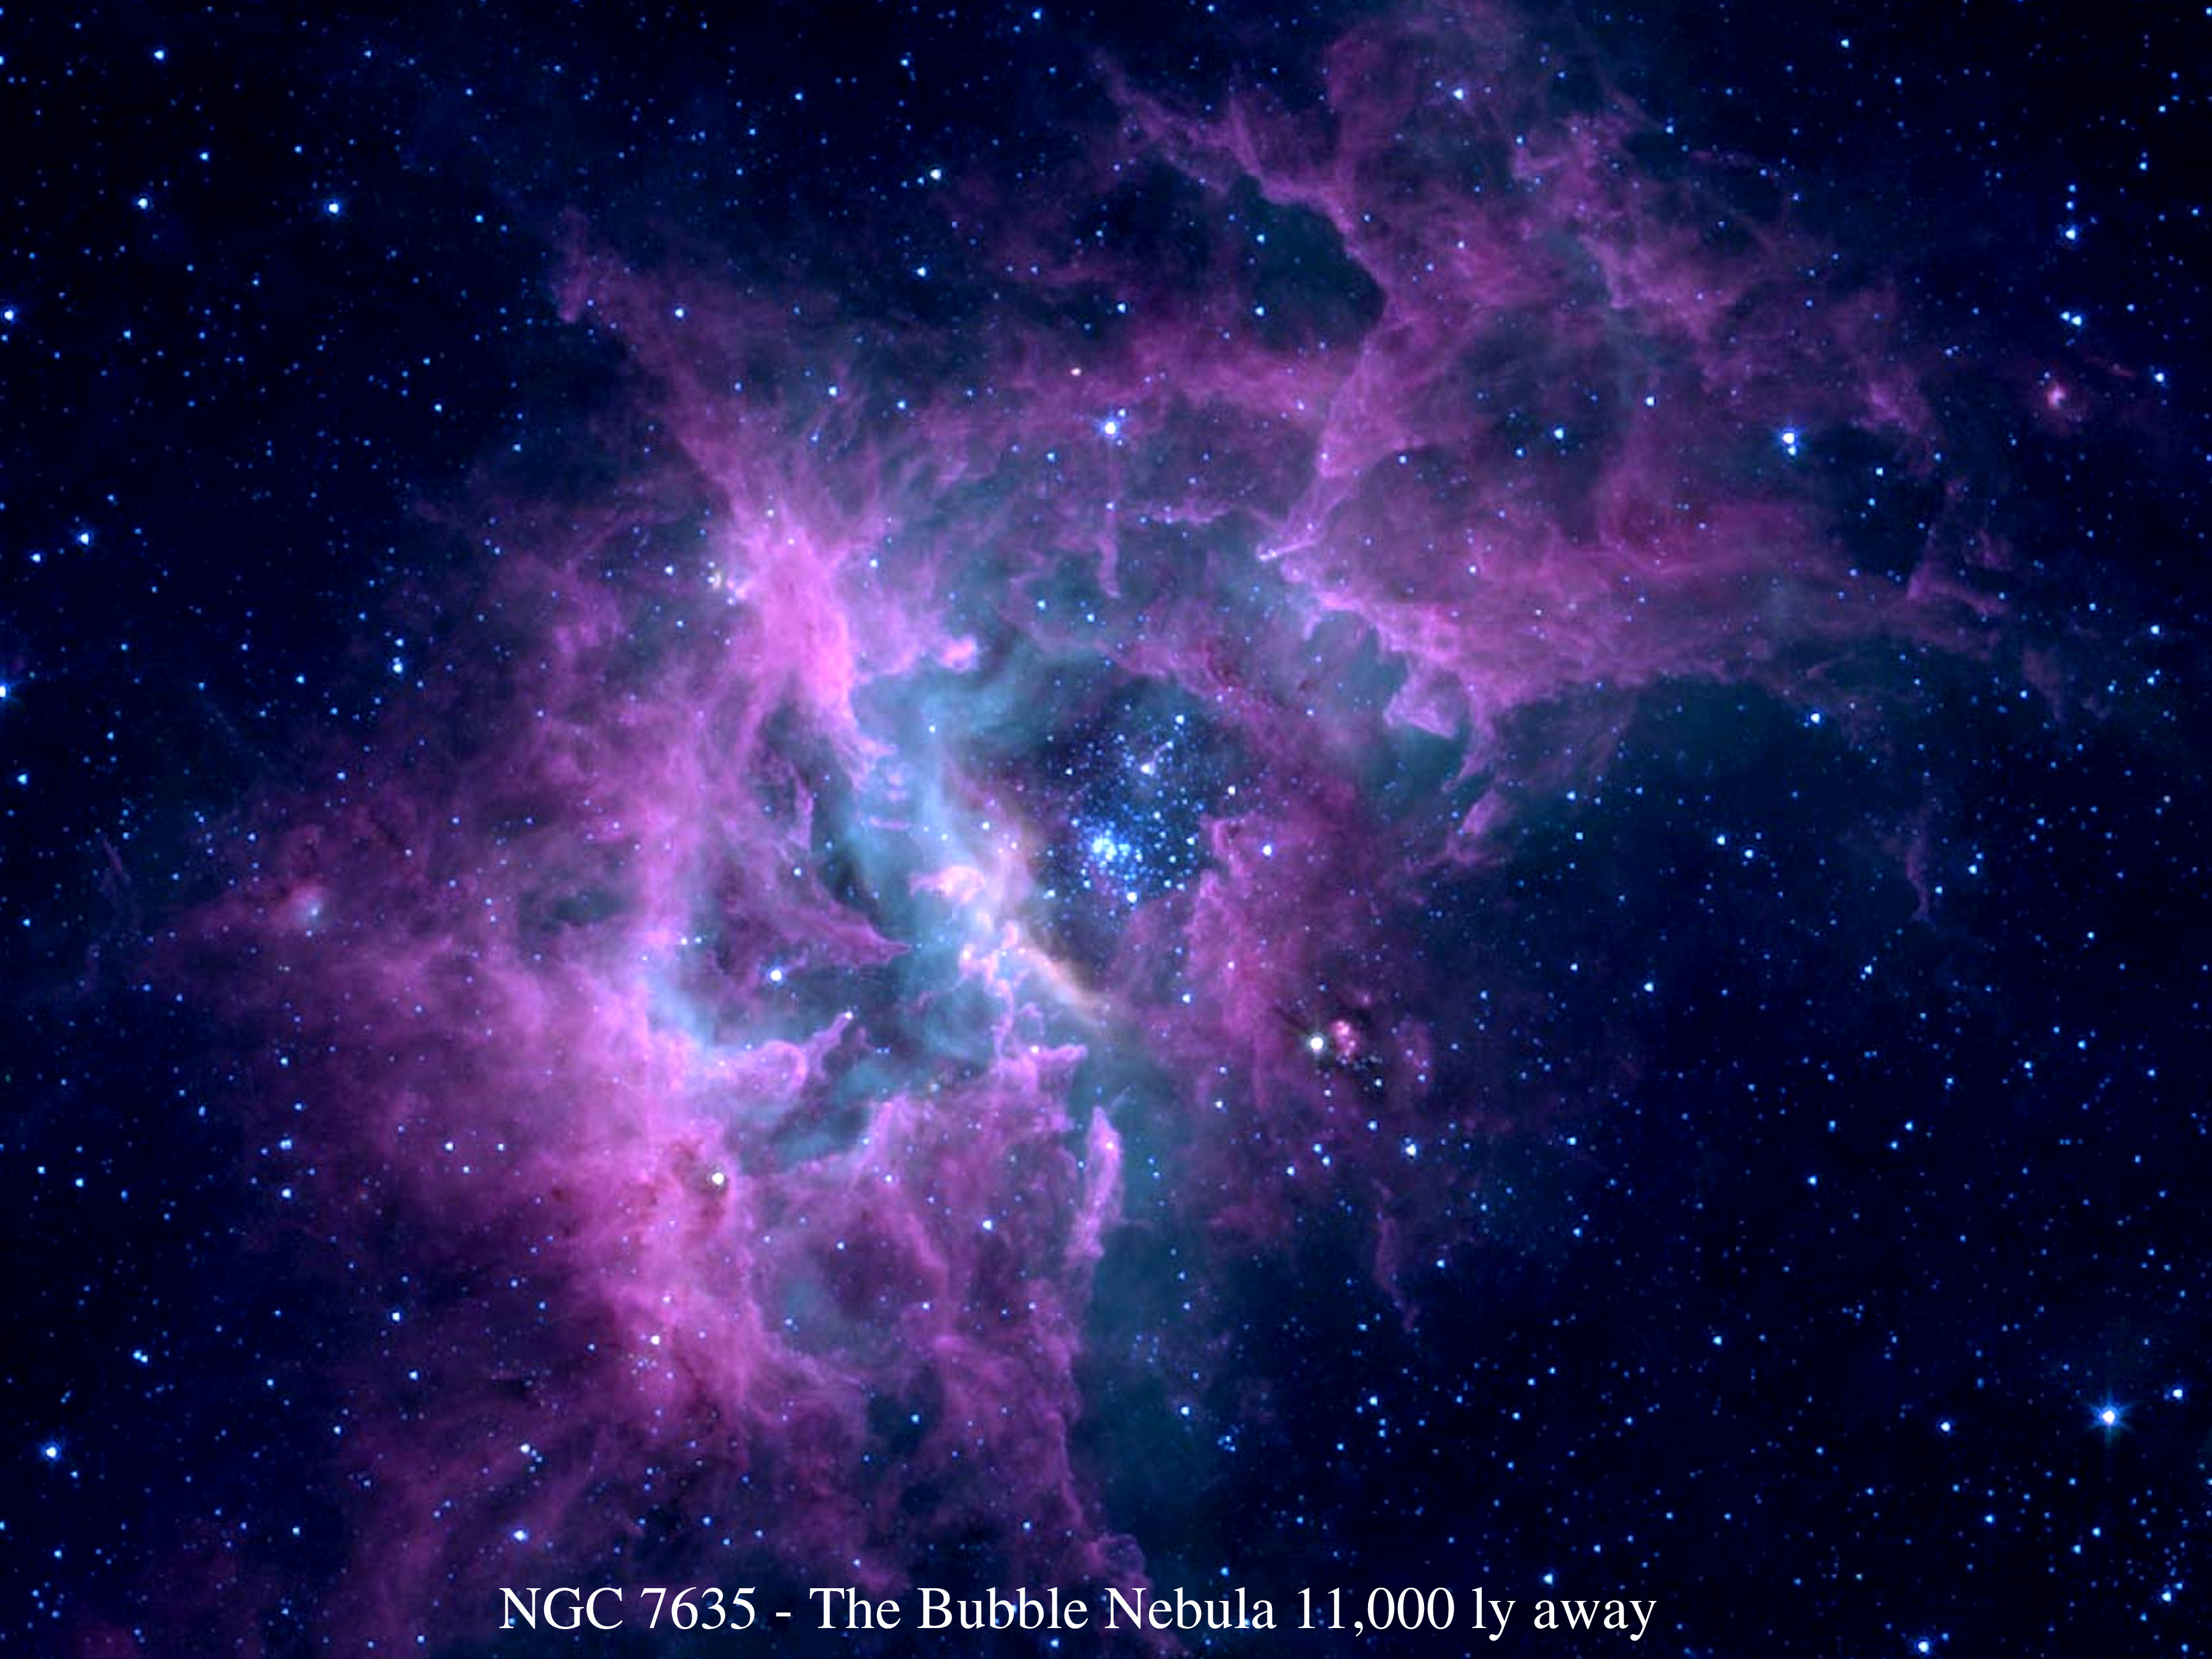 Space Nebula Wallpaper   Pics about space 4000x3000